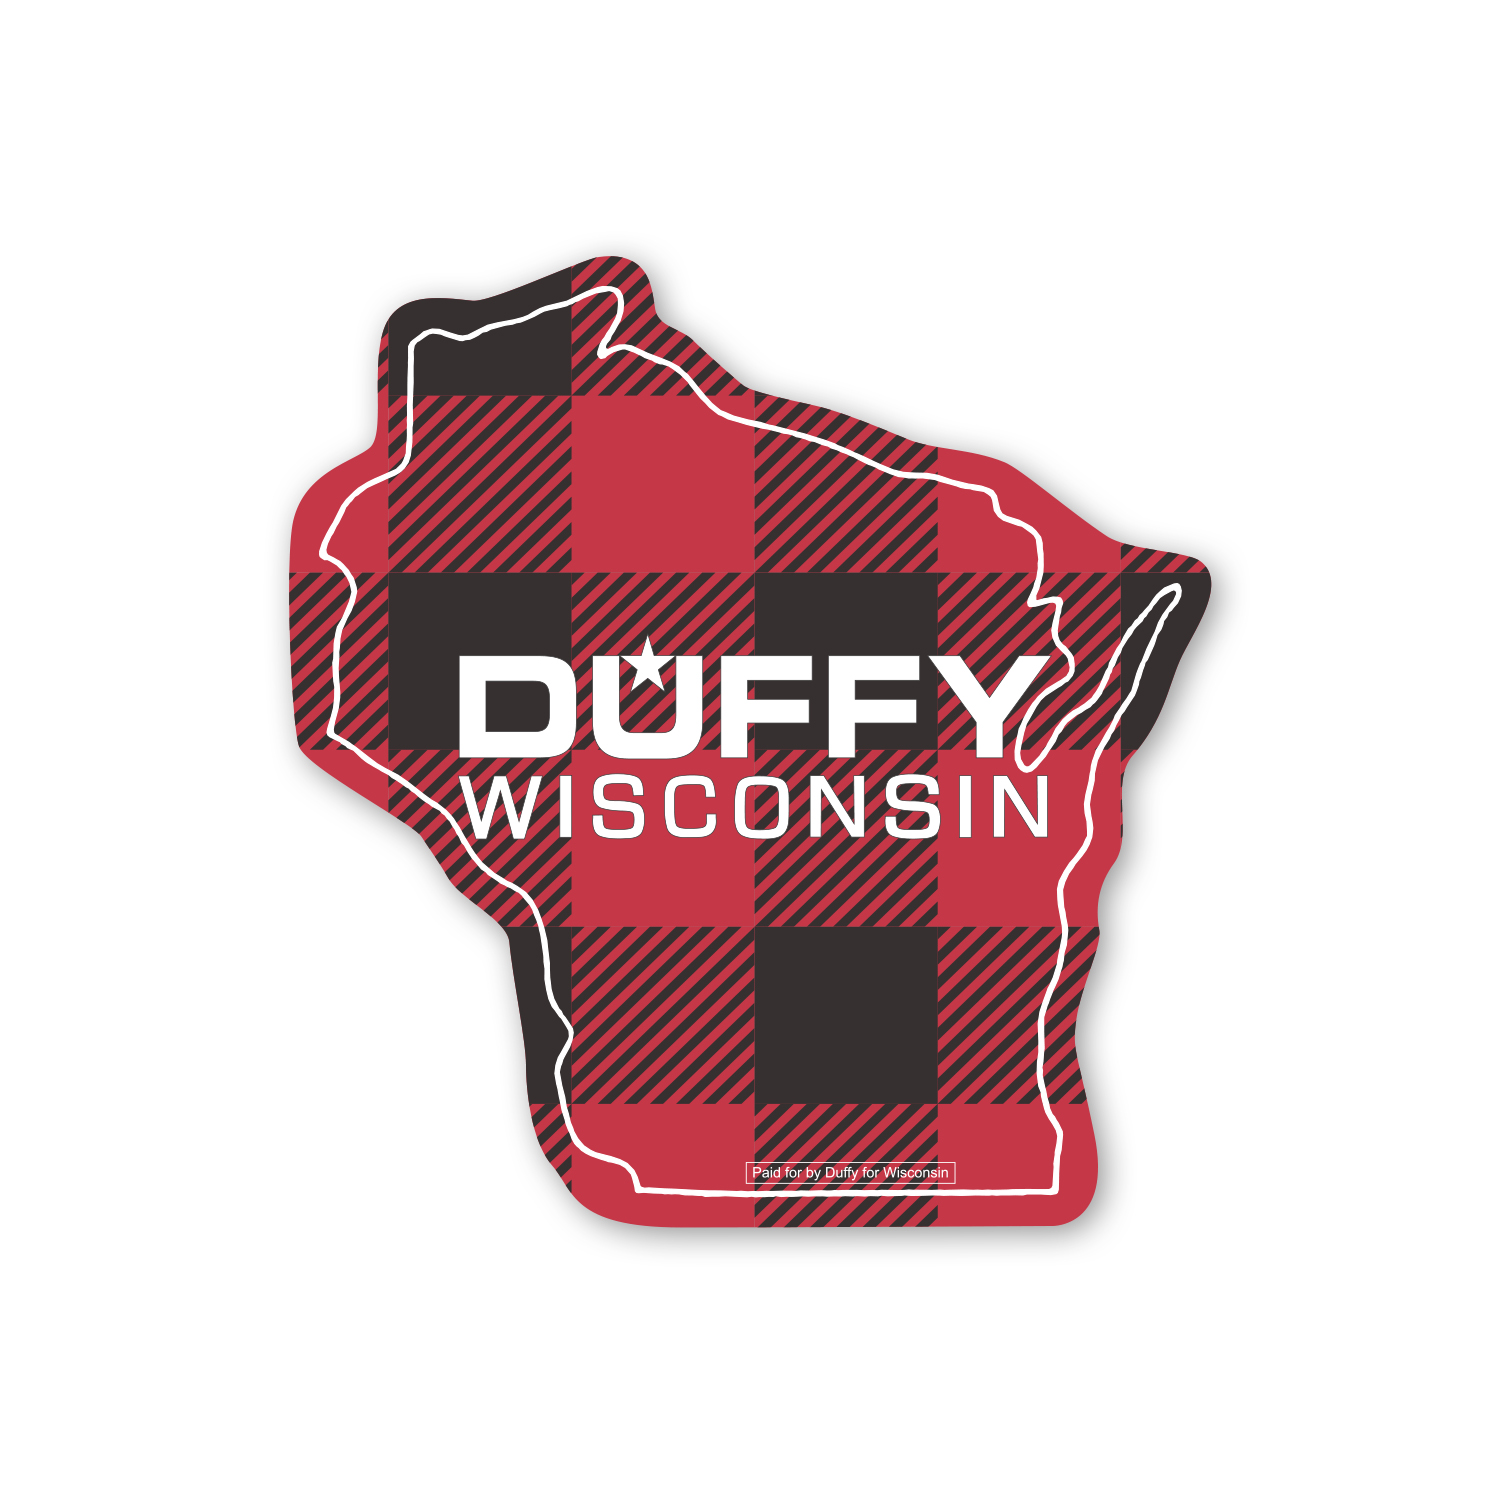 """• MSWI Stock Wisconsin State Magnet, 2.7813"""" X 2.9375"""", .020 thickness  • Campaign magnets used as handouts."""